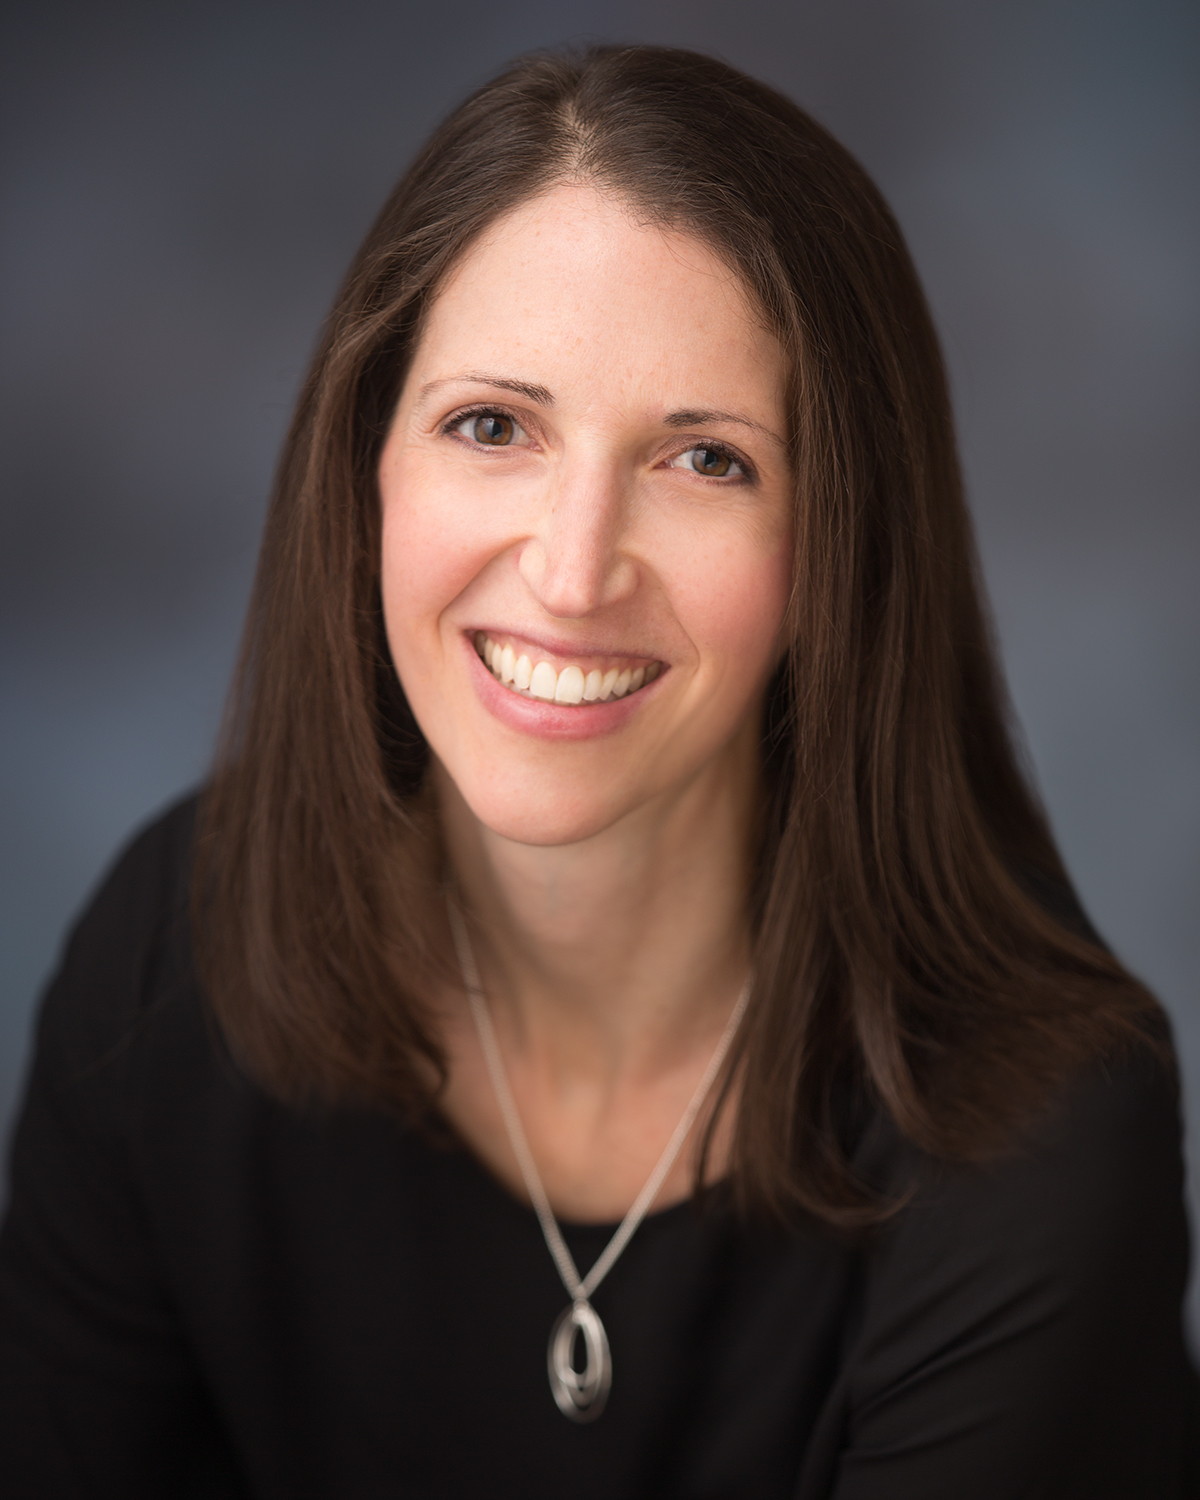 Samantha R. Adkins, MD - Physician and Surgeon in Portland, OR